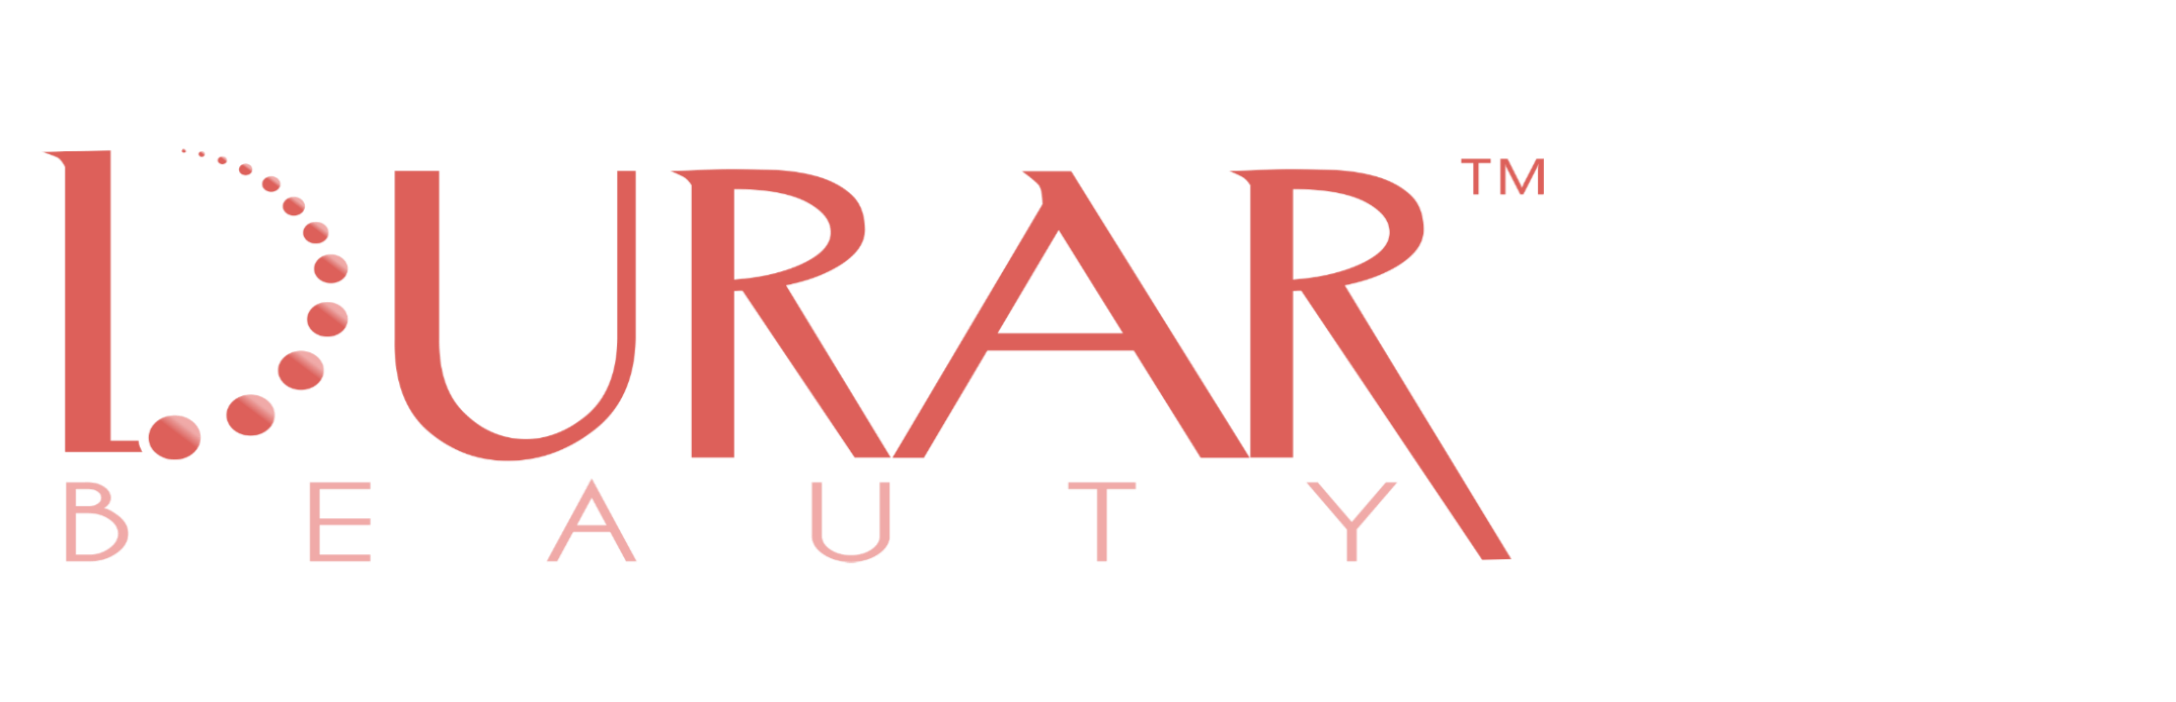 Shenzhen Durar Beauty Technology Co.,Ltd